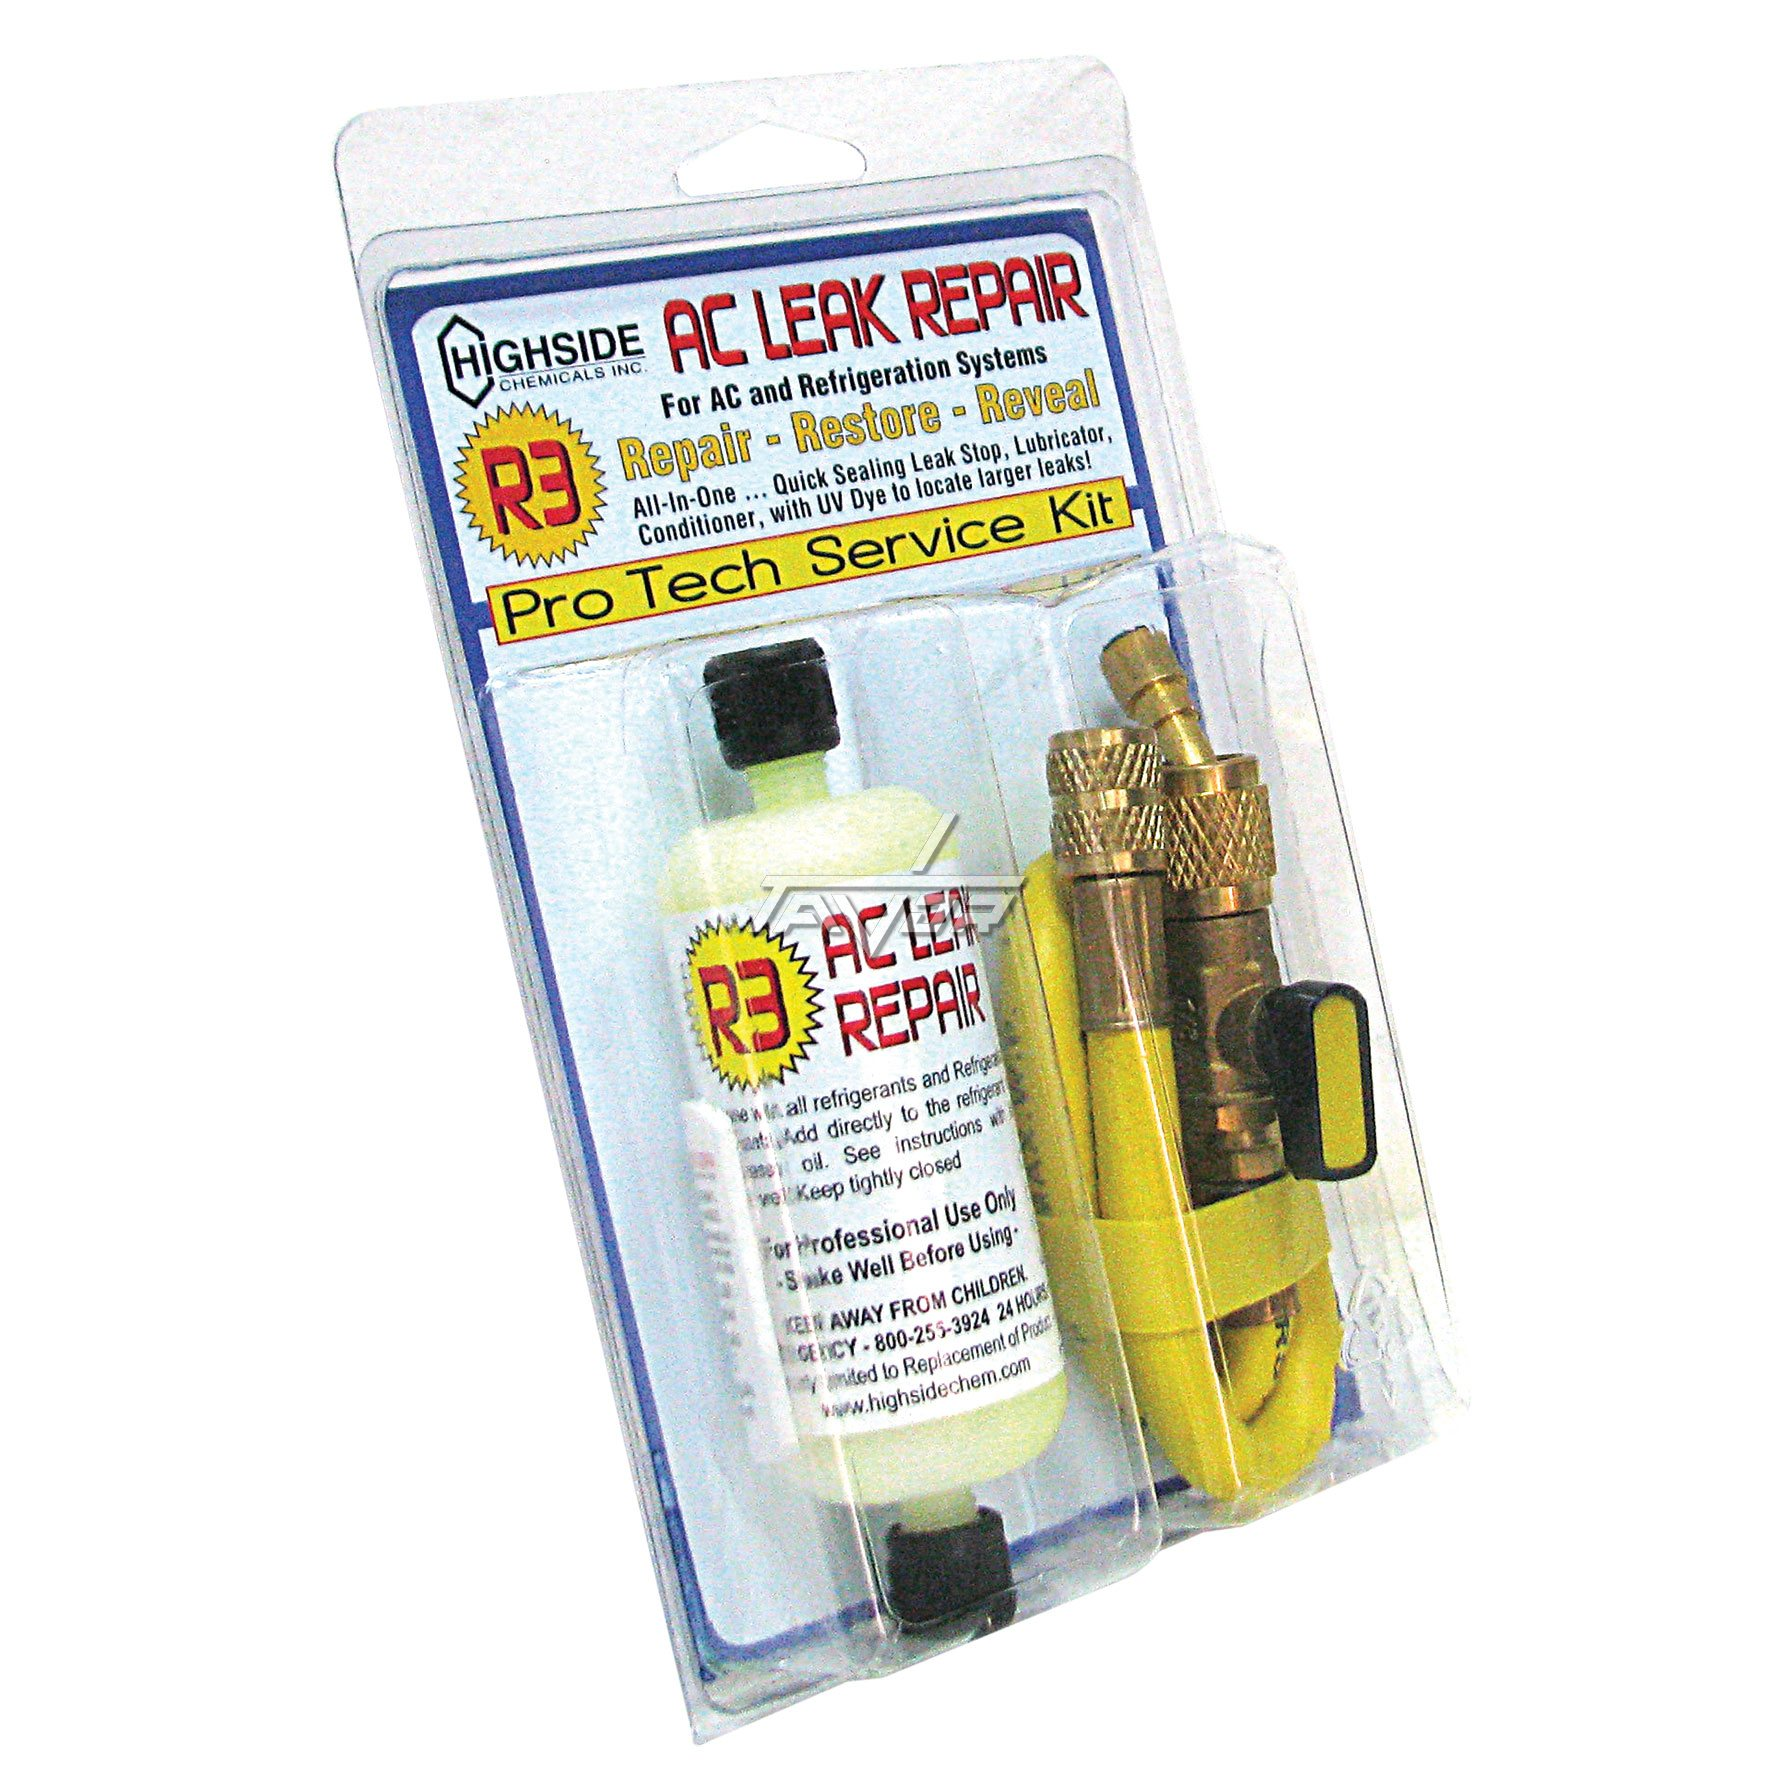 Leak Reapir Kit R3 Yellow 59 Ml For A/C And Refrigerator Systems - Supco Hs60002